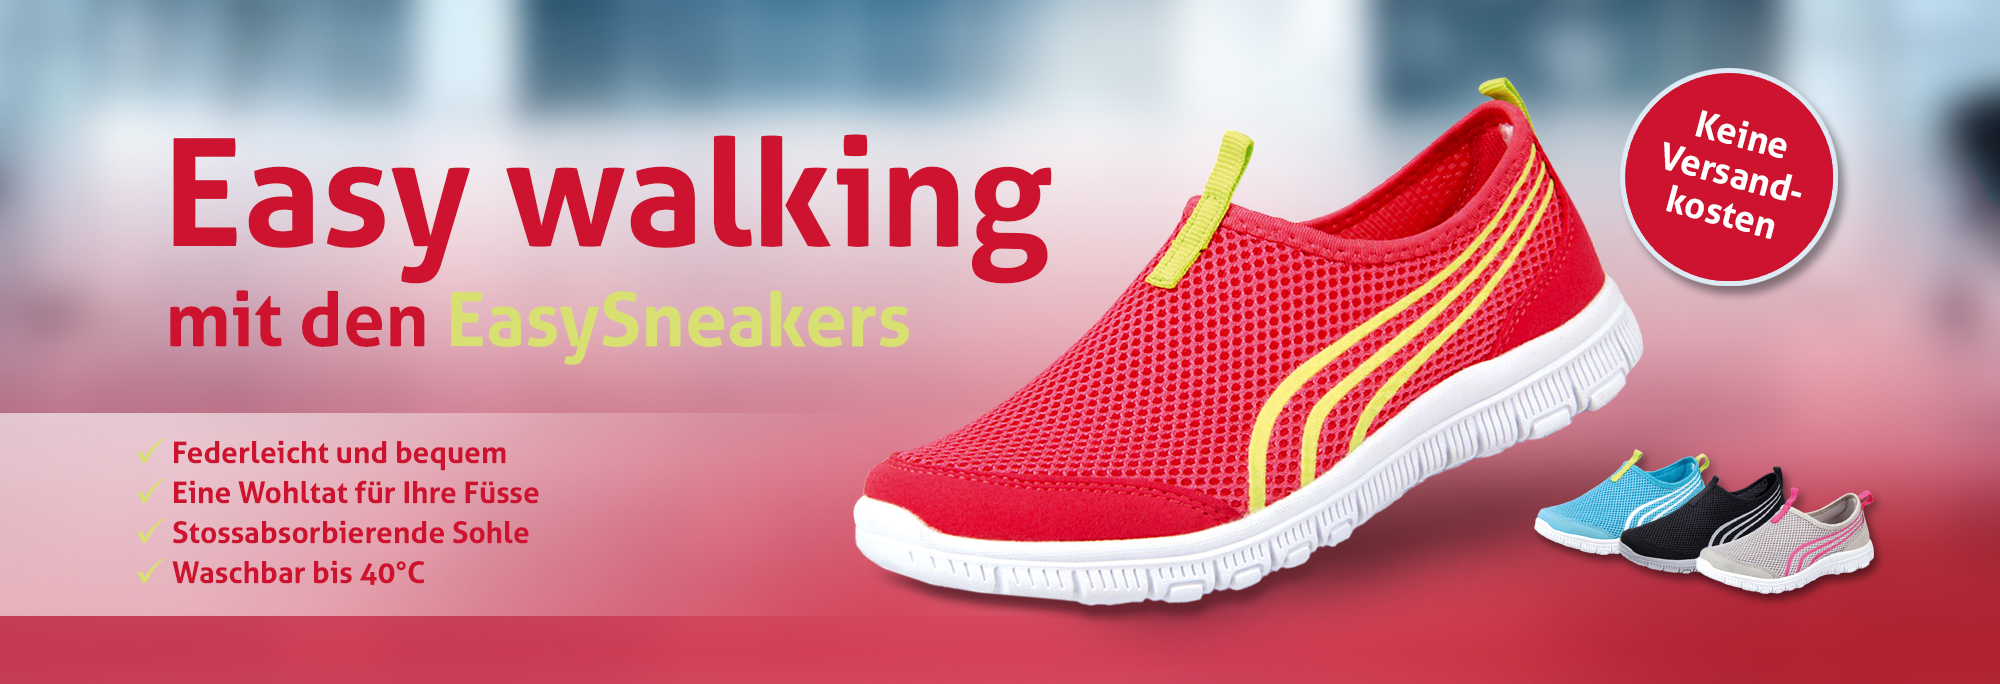 Easy walking mit EasySneakers